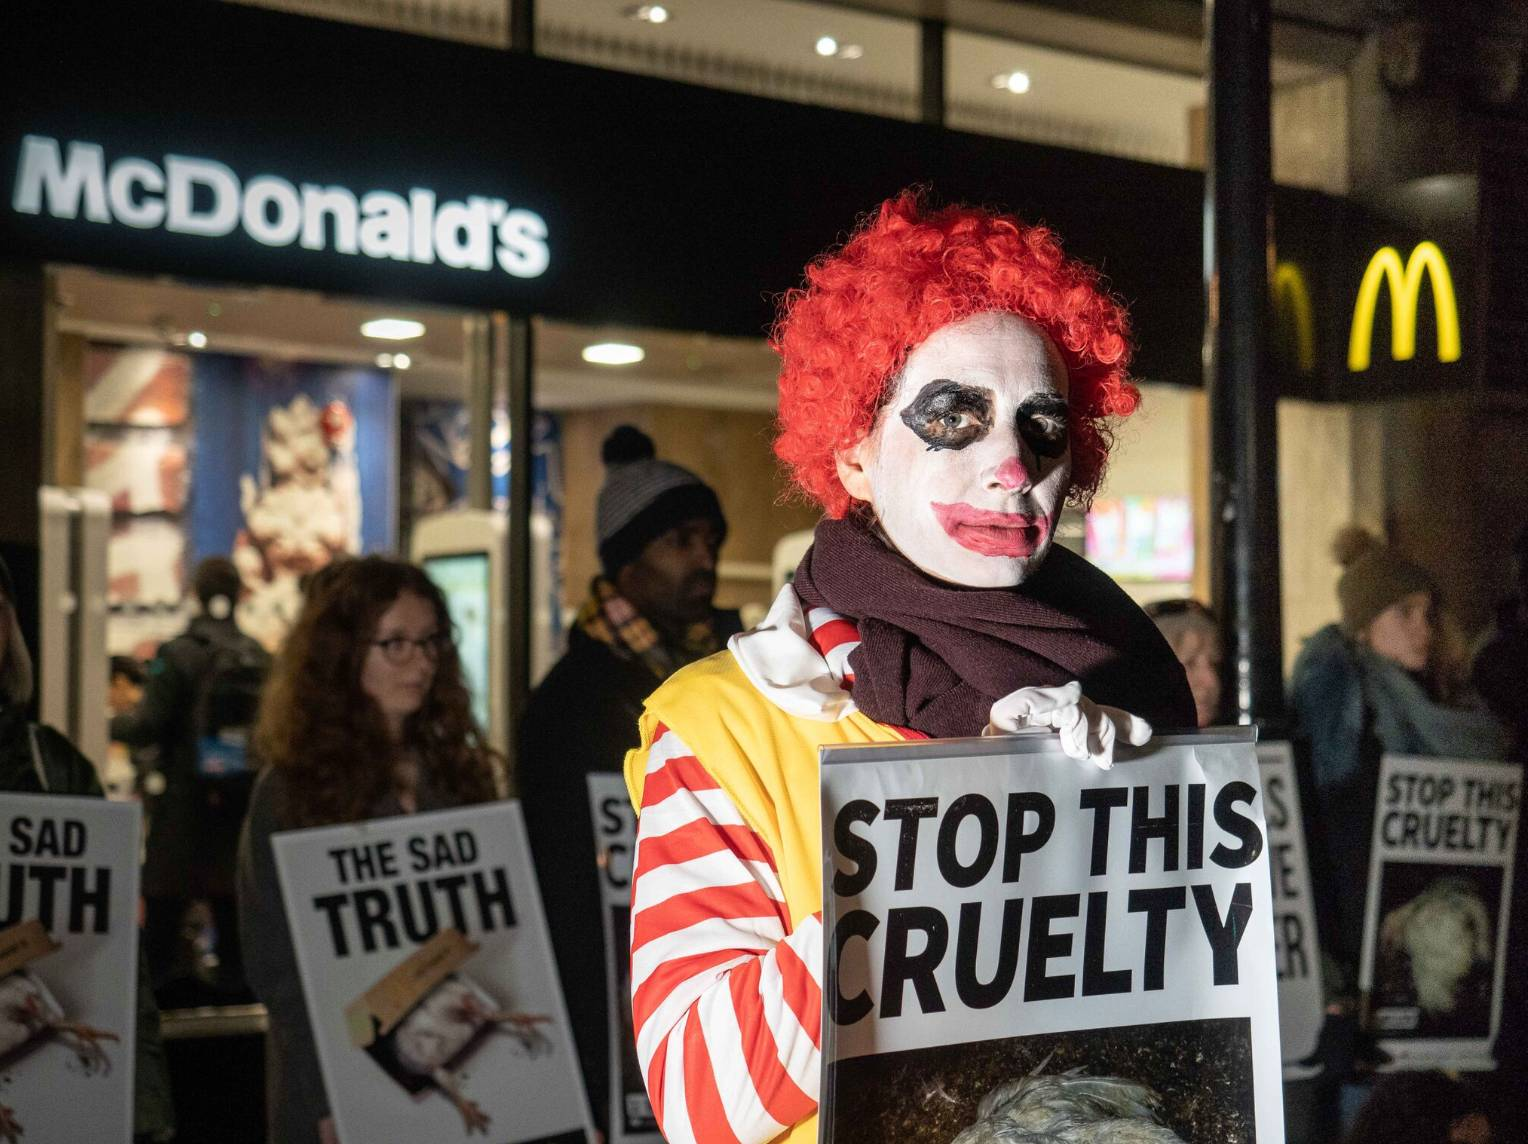 Campaigners protest against McDonald's animal welfare standards